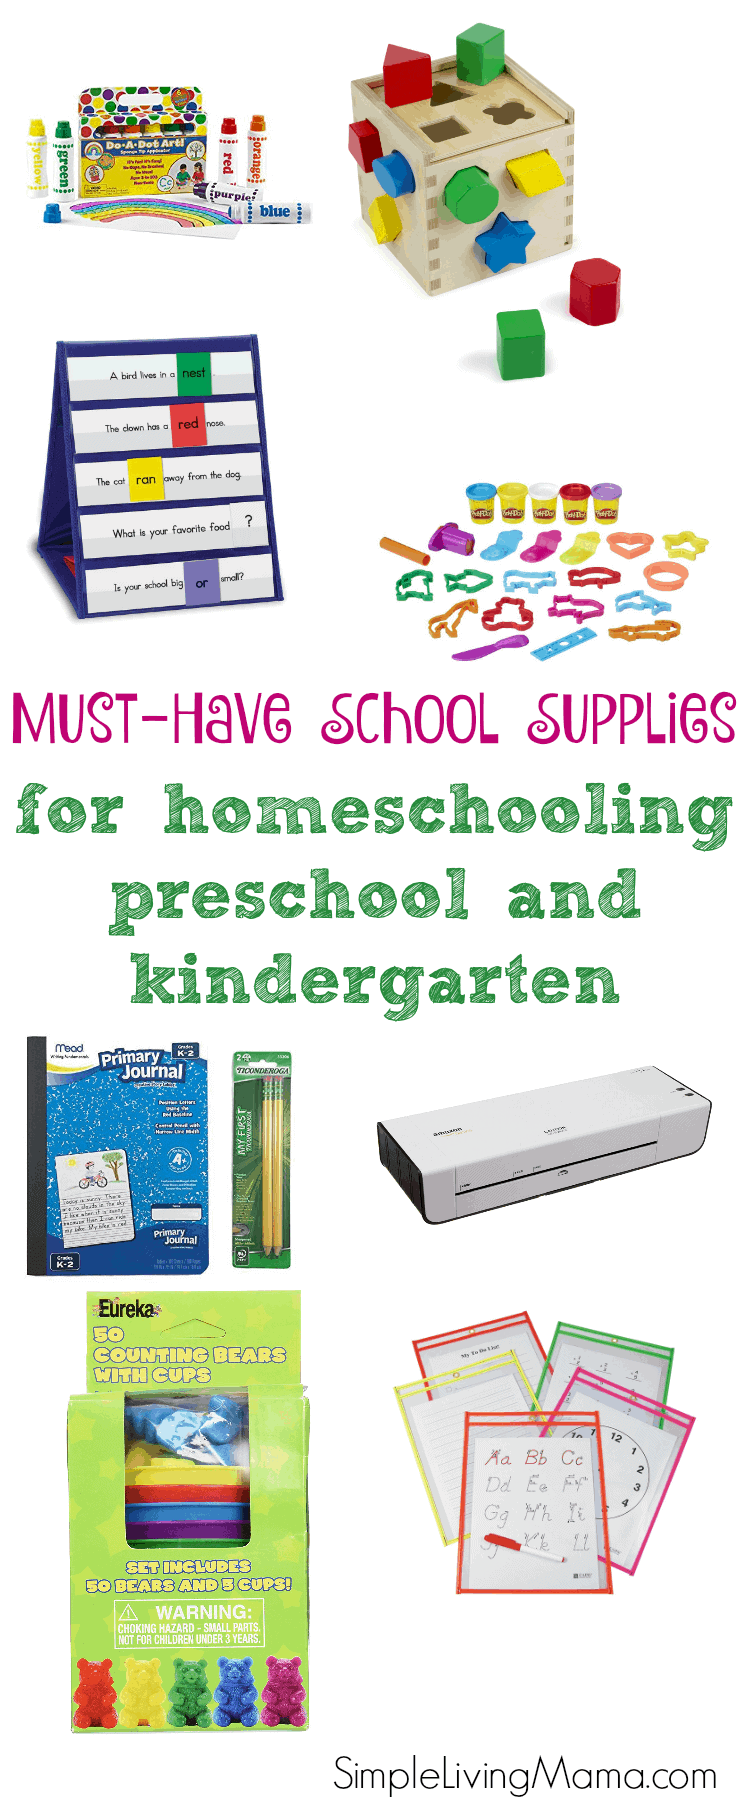 These must-have school supplies for homeschooling preschool and kindergarten come in handy when teaching your child!